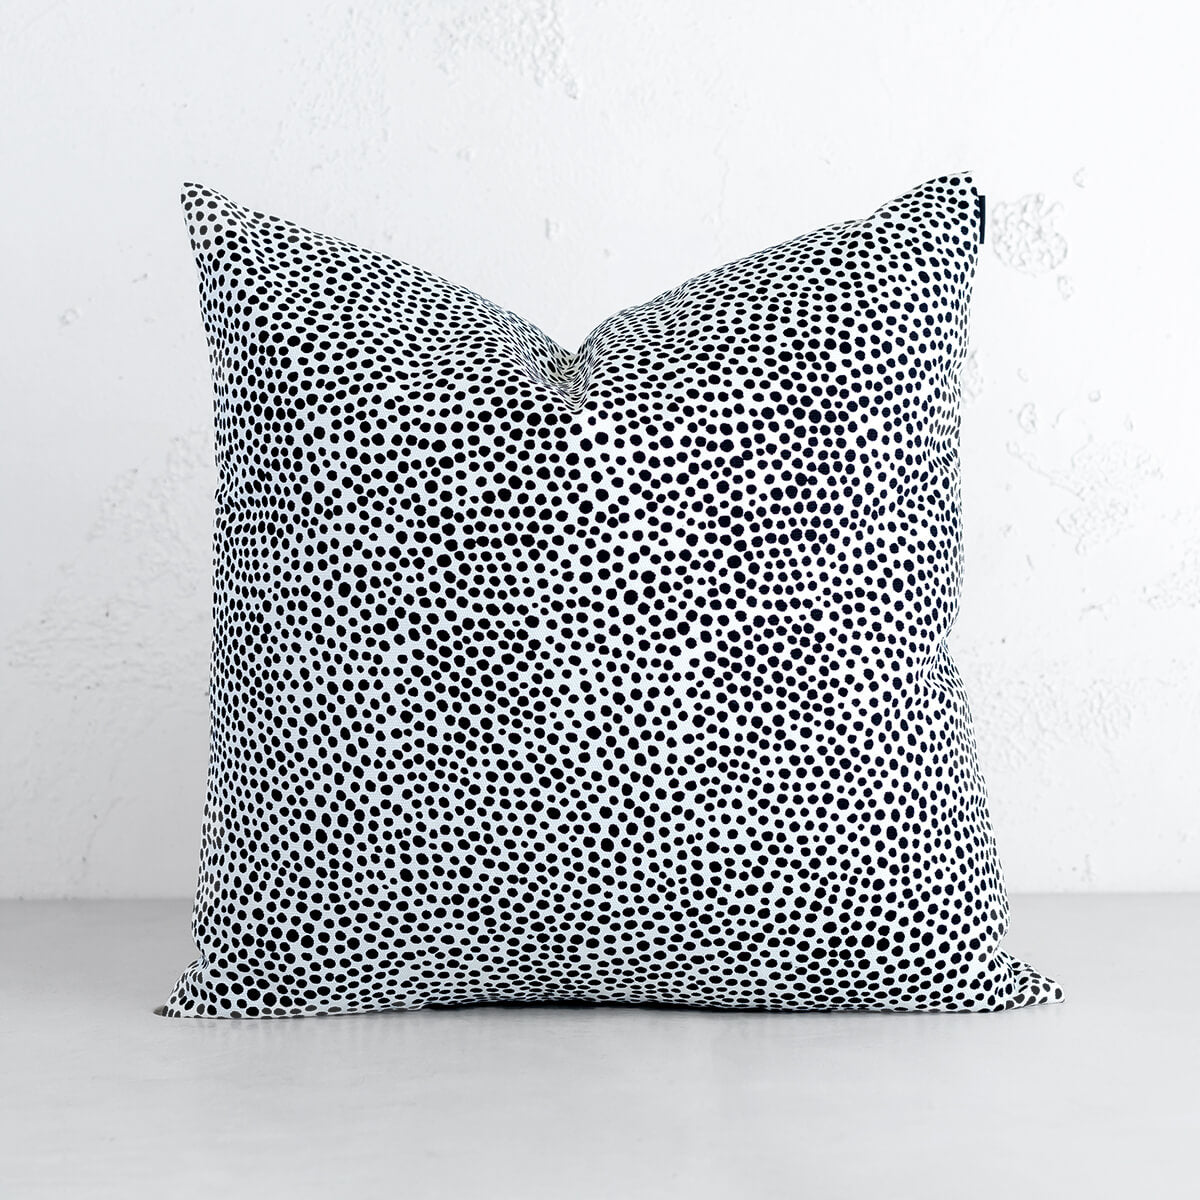 MARIMEKKO  |  PIRPUT PARPUT HEAVY DUTY COTTON  CUSHION  |  BLACK WHITE